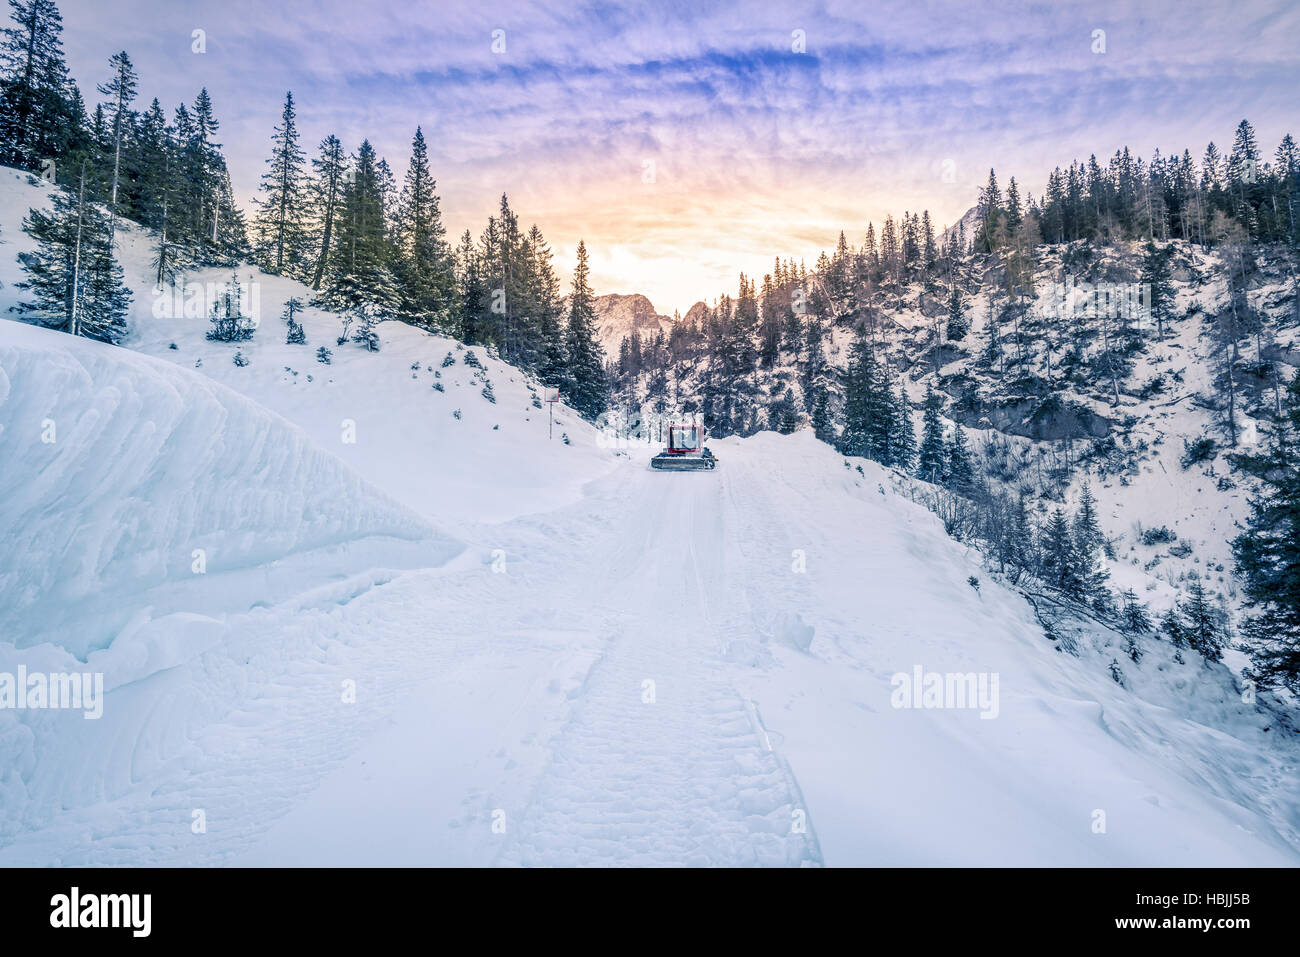 Alpine road mapped out in snow, Austria - Stock Image